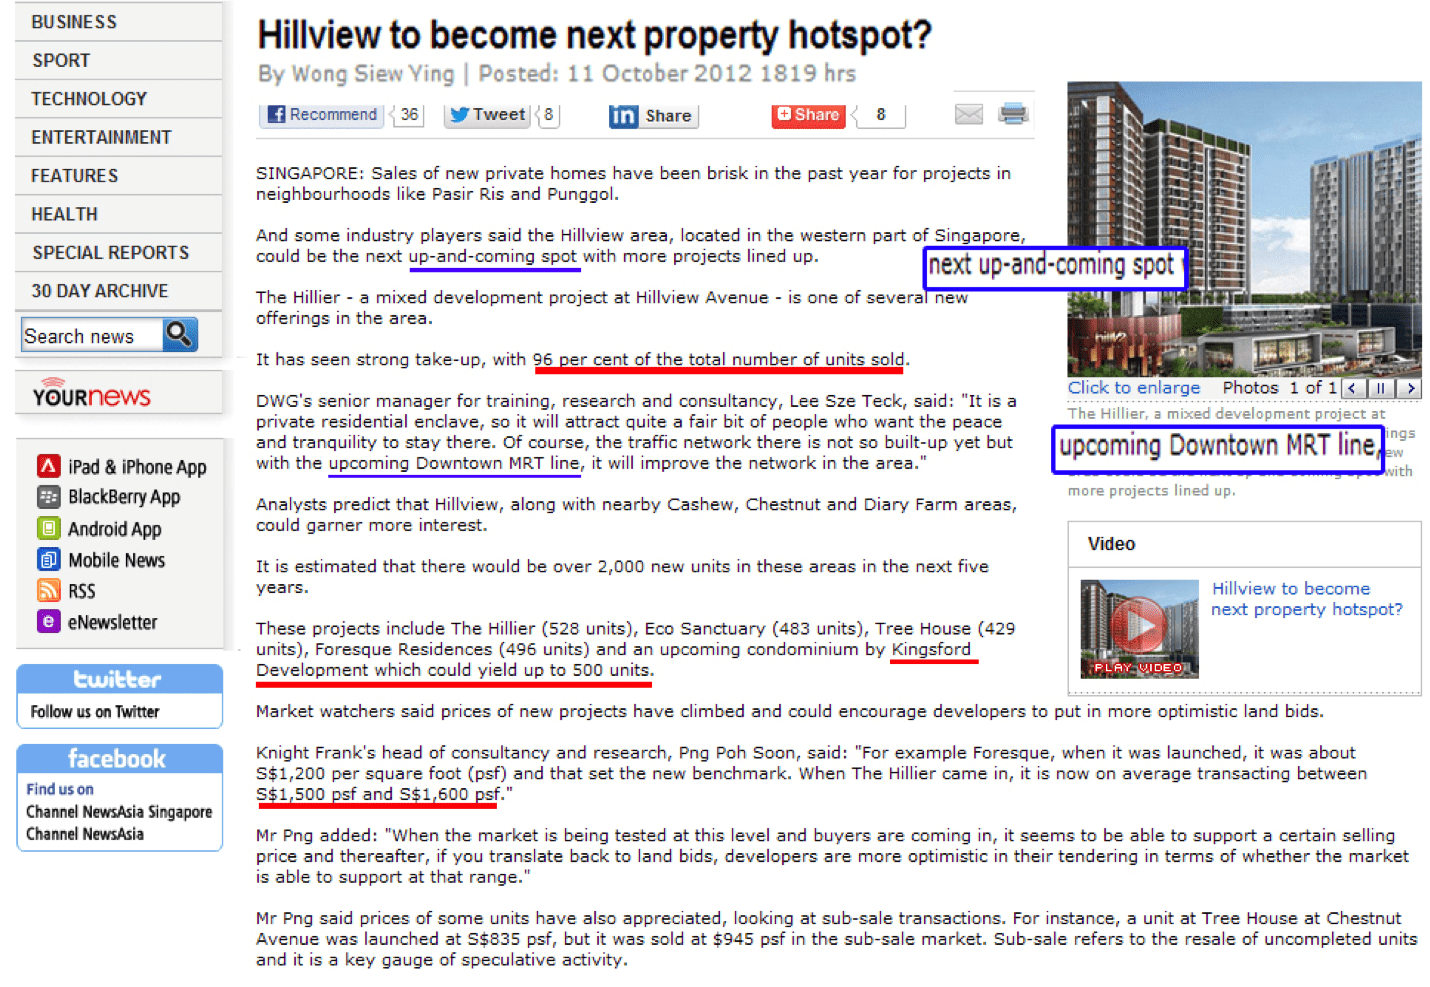 News Article on Hillview- next property hotspot?